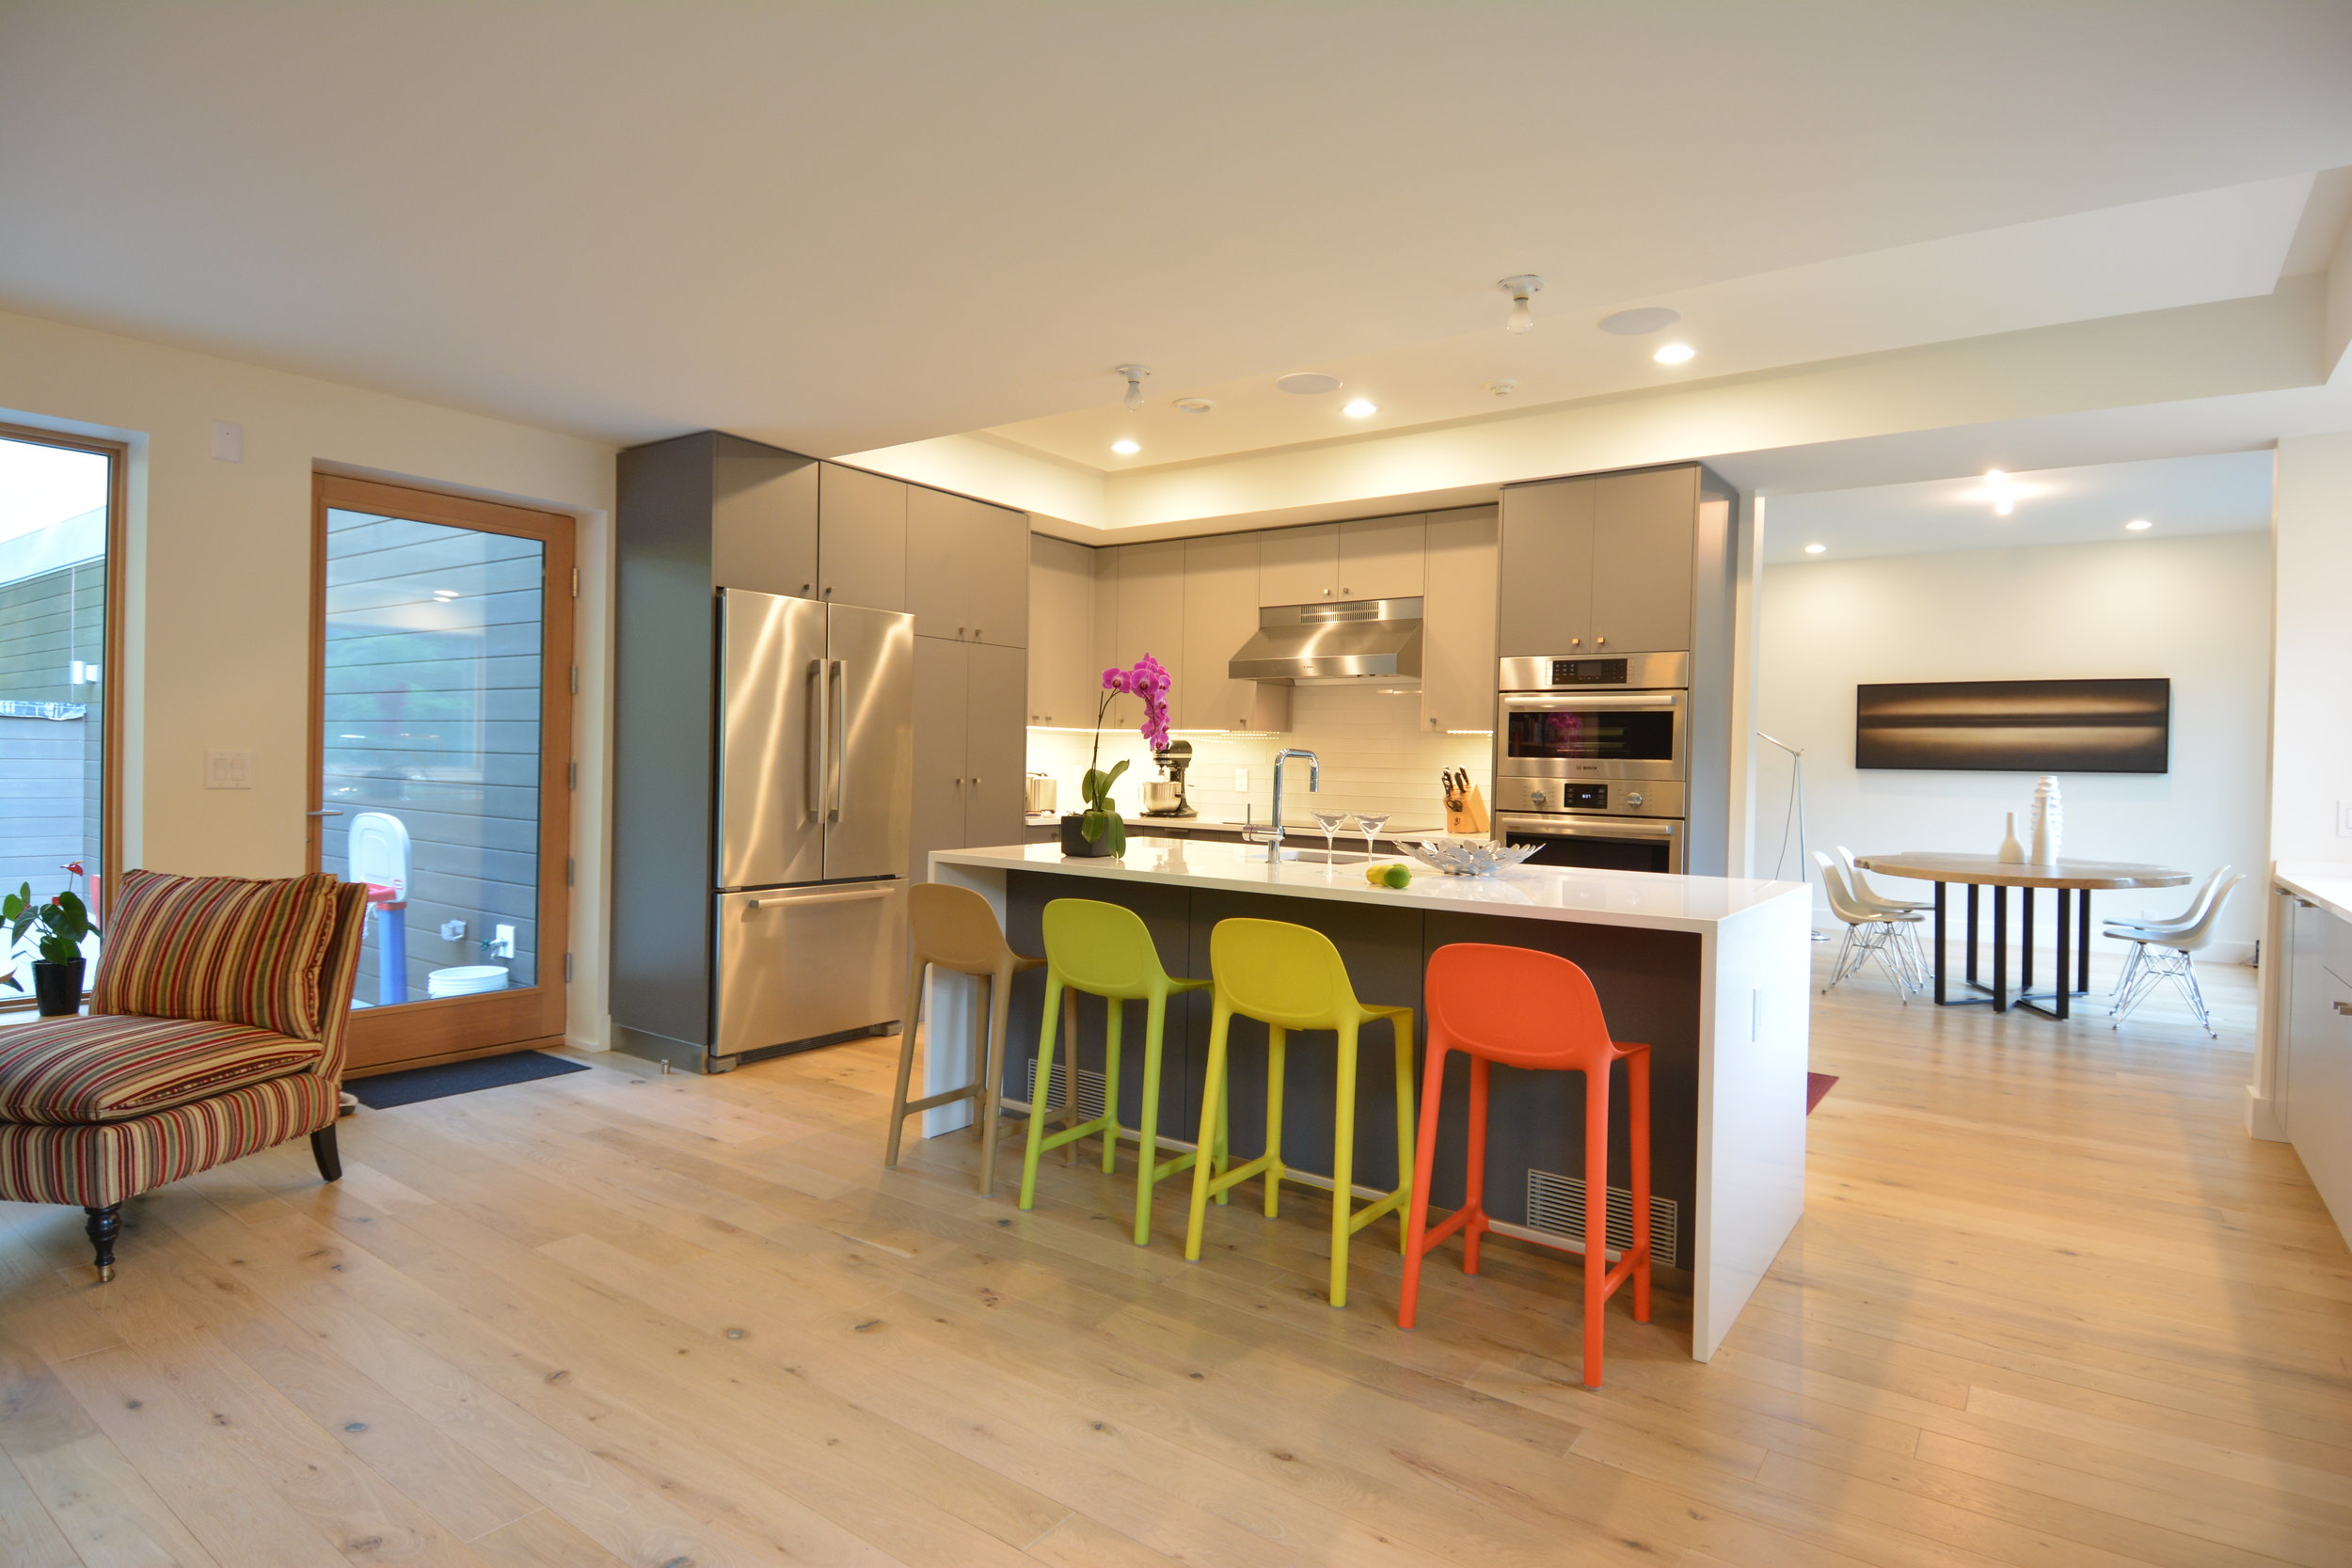 Breakfast bar and kitchen with colorful stools